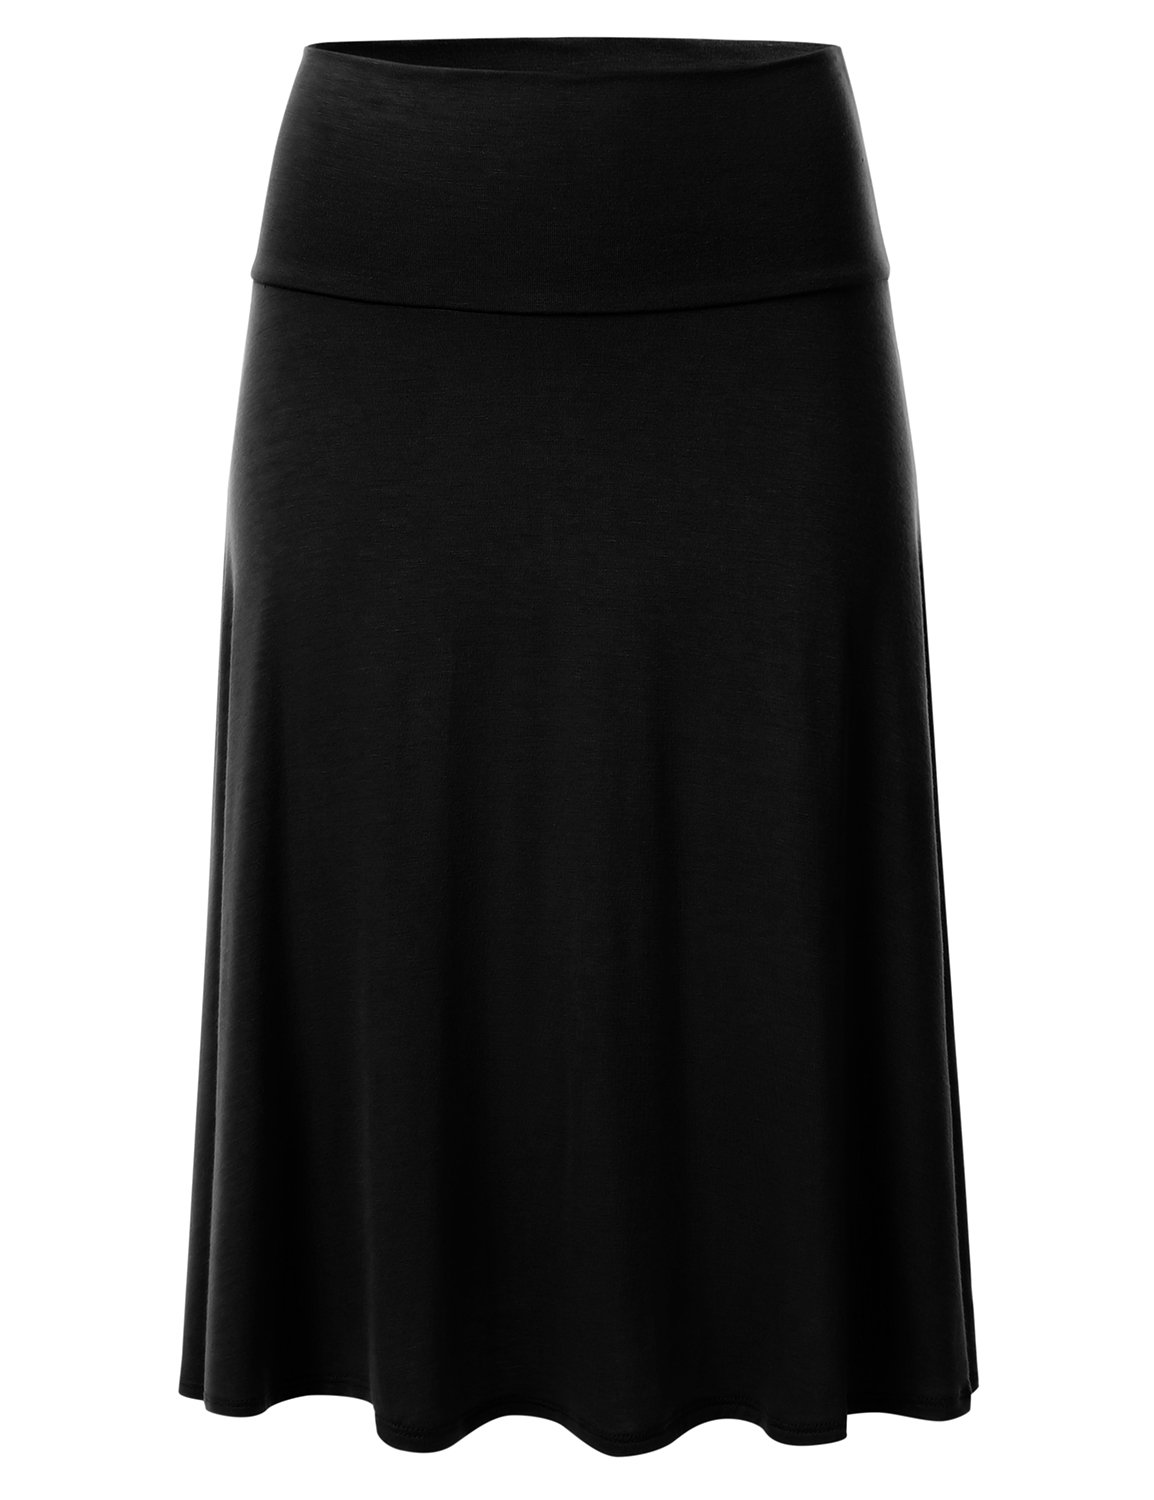 FLORIA Womens Solid Lightweight Knit Elastic Waist Flared Midi Skirt Black M